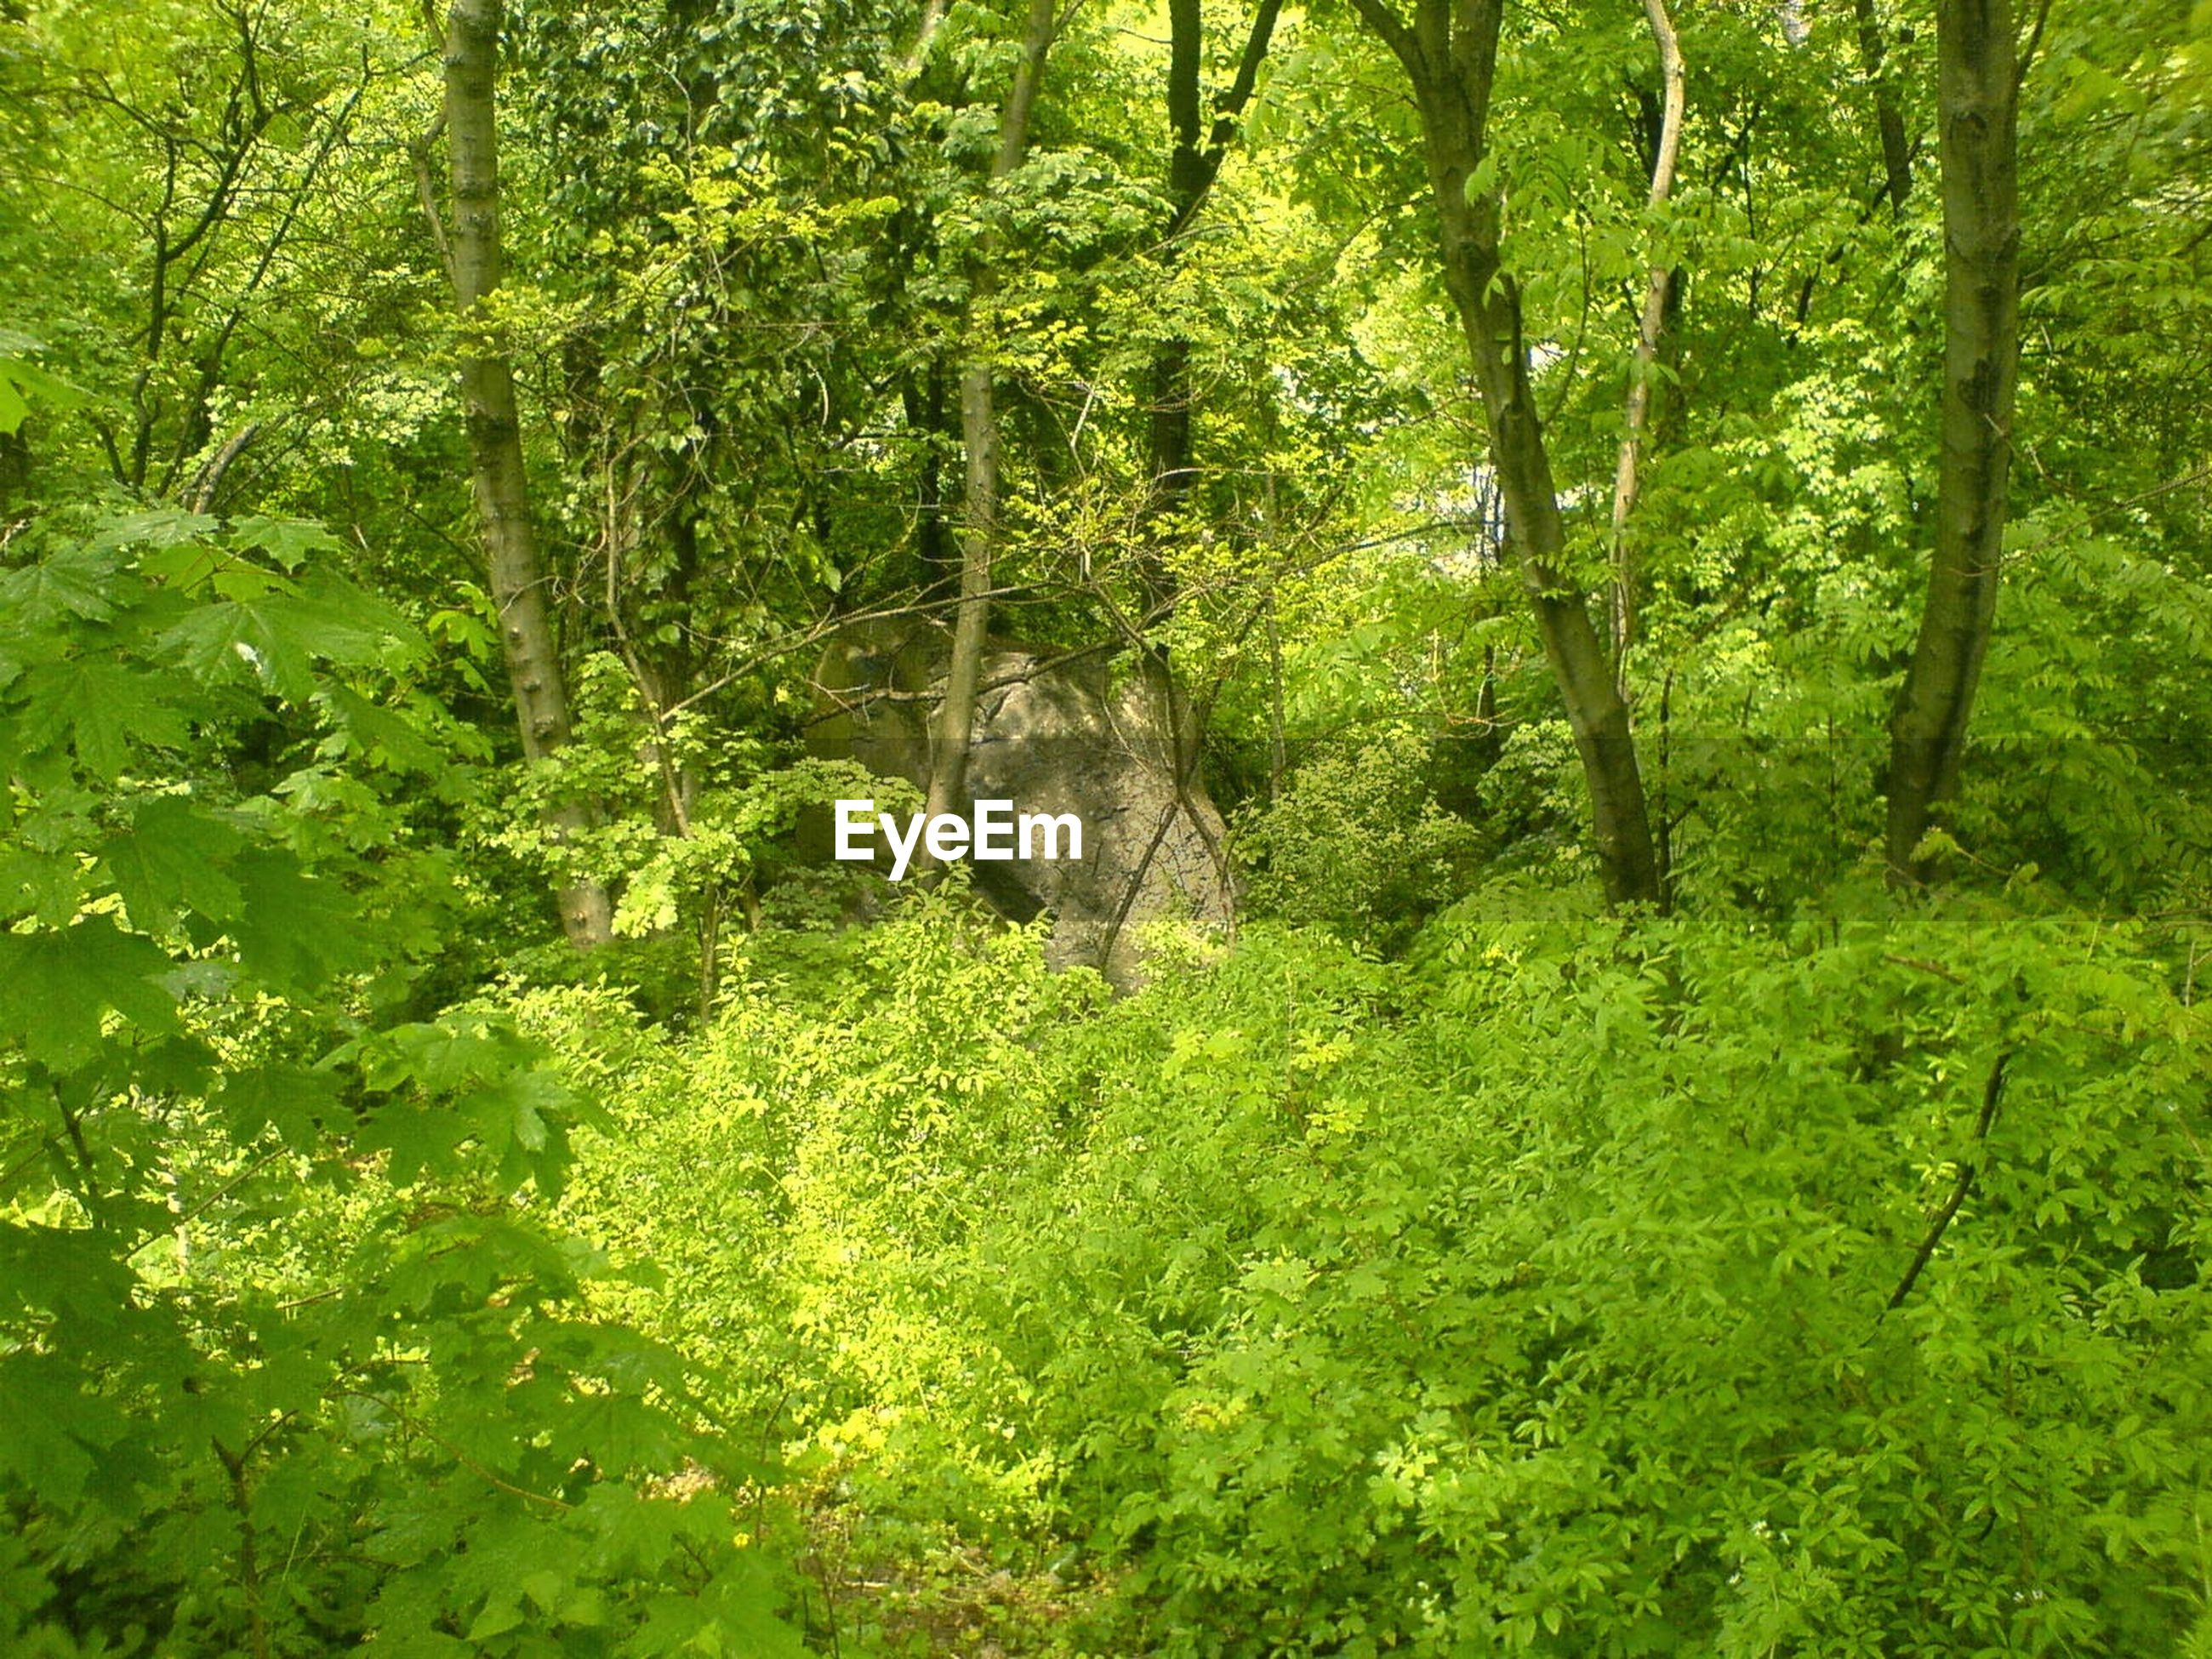 VIEW OF TREES IN FOREST